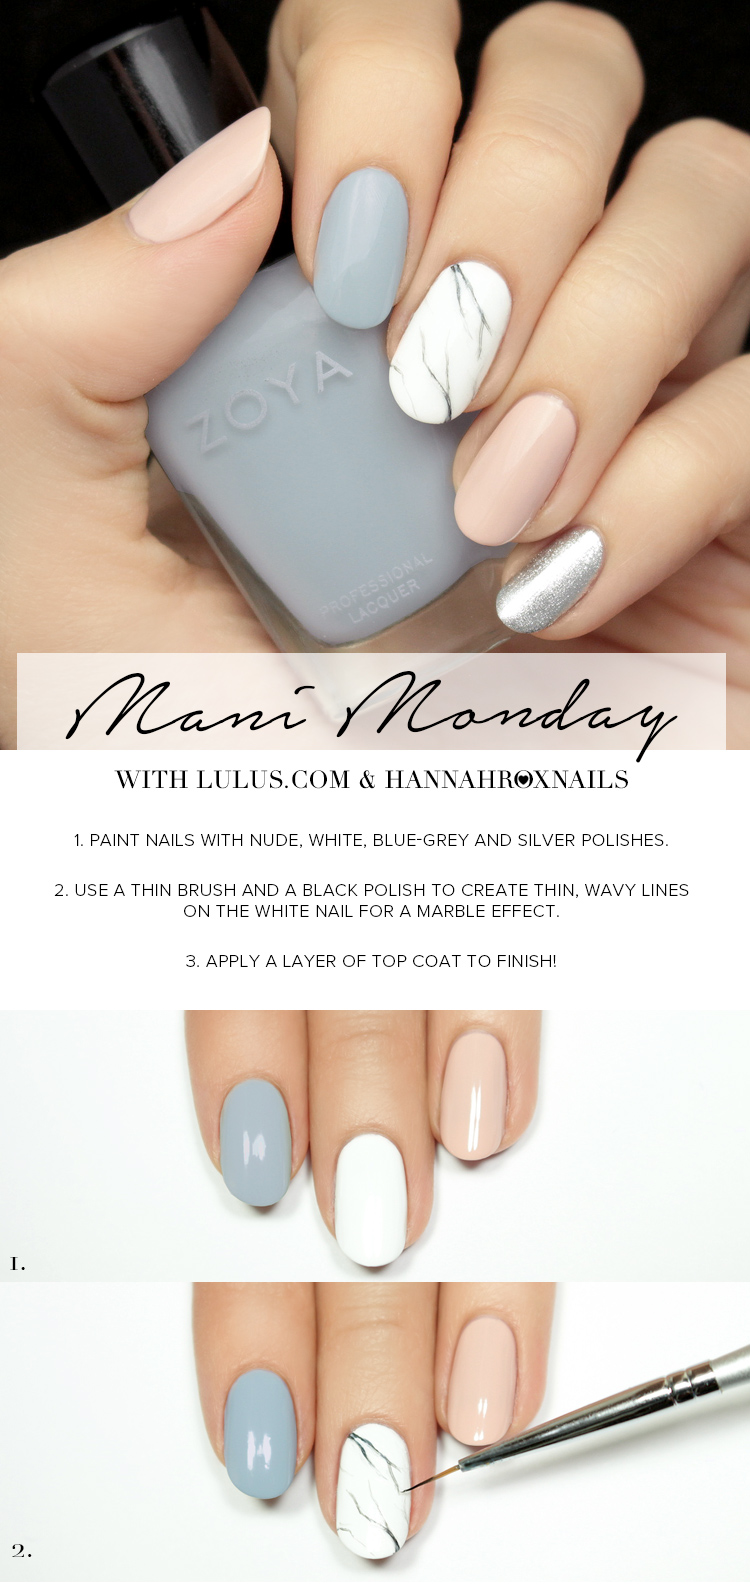 Mani Monday Pastel Marble Nail Tutorial At LuLus